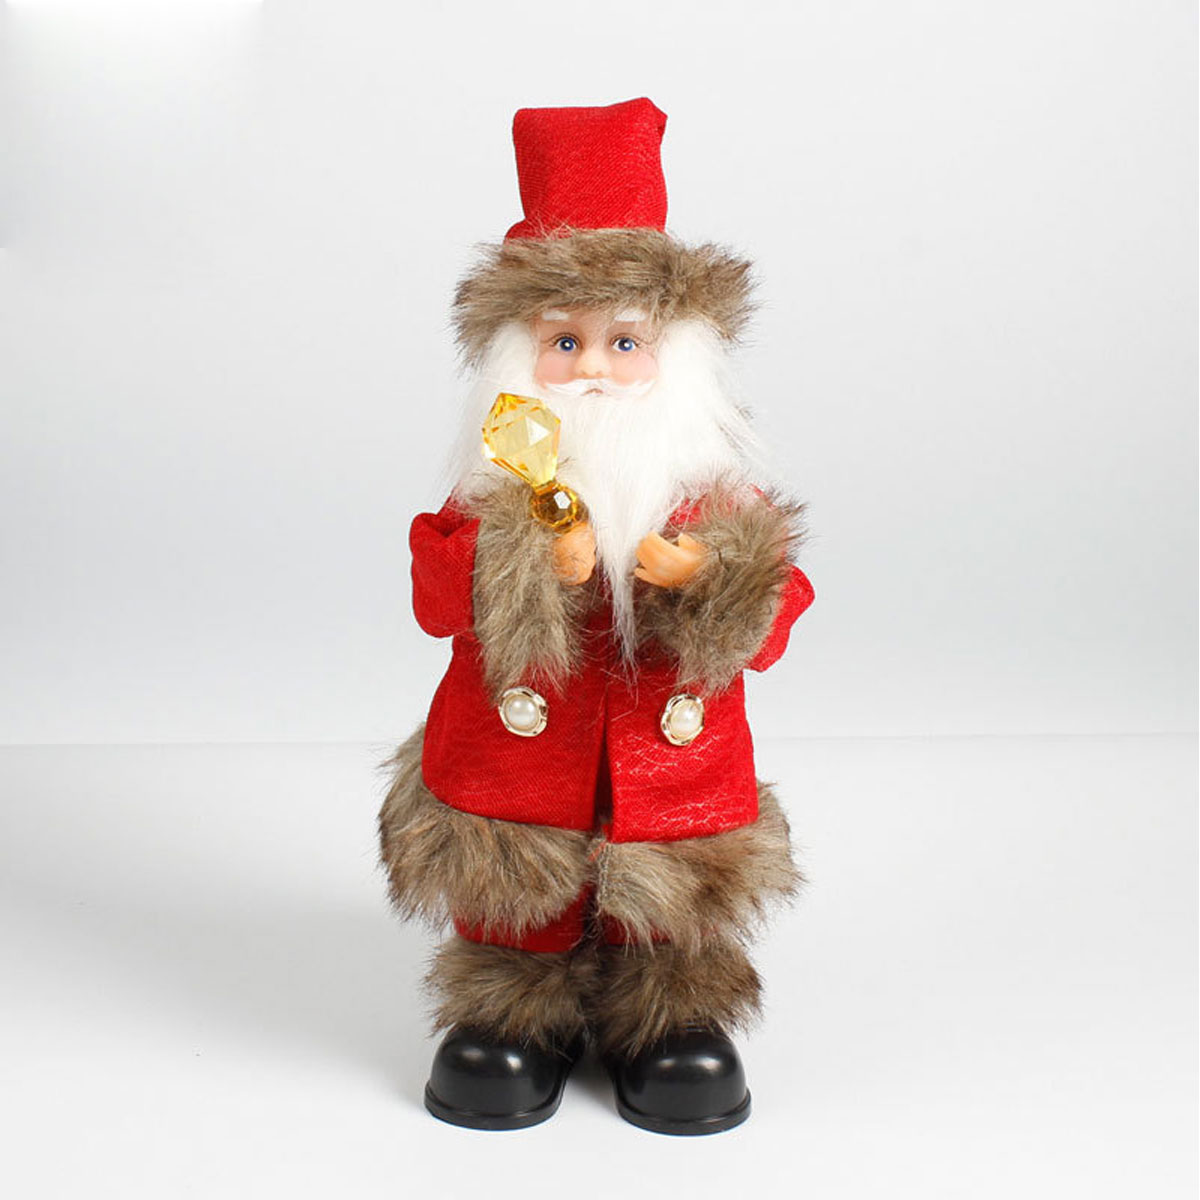 Christmas Dancing Santa.Santa Claus Electric Toy Battery Operated Plush Singing Dancing Santa Doll Christmas Gift